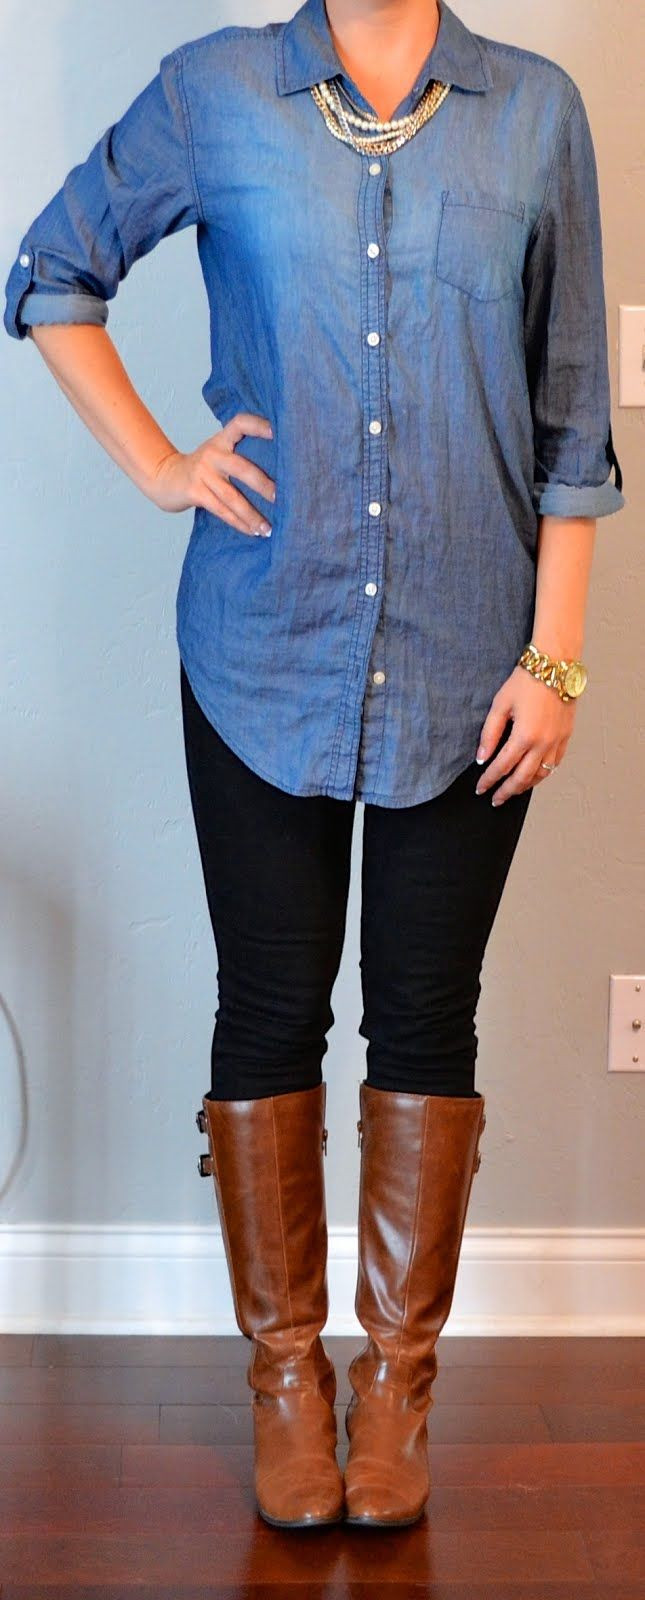 Outfit Posts: chambray shirt, black skinny jeans, brown boots  outfitposts.blogspot.com